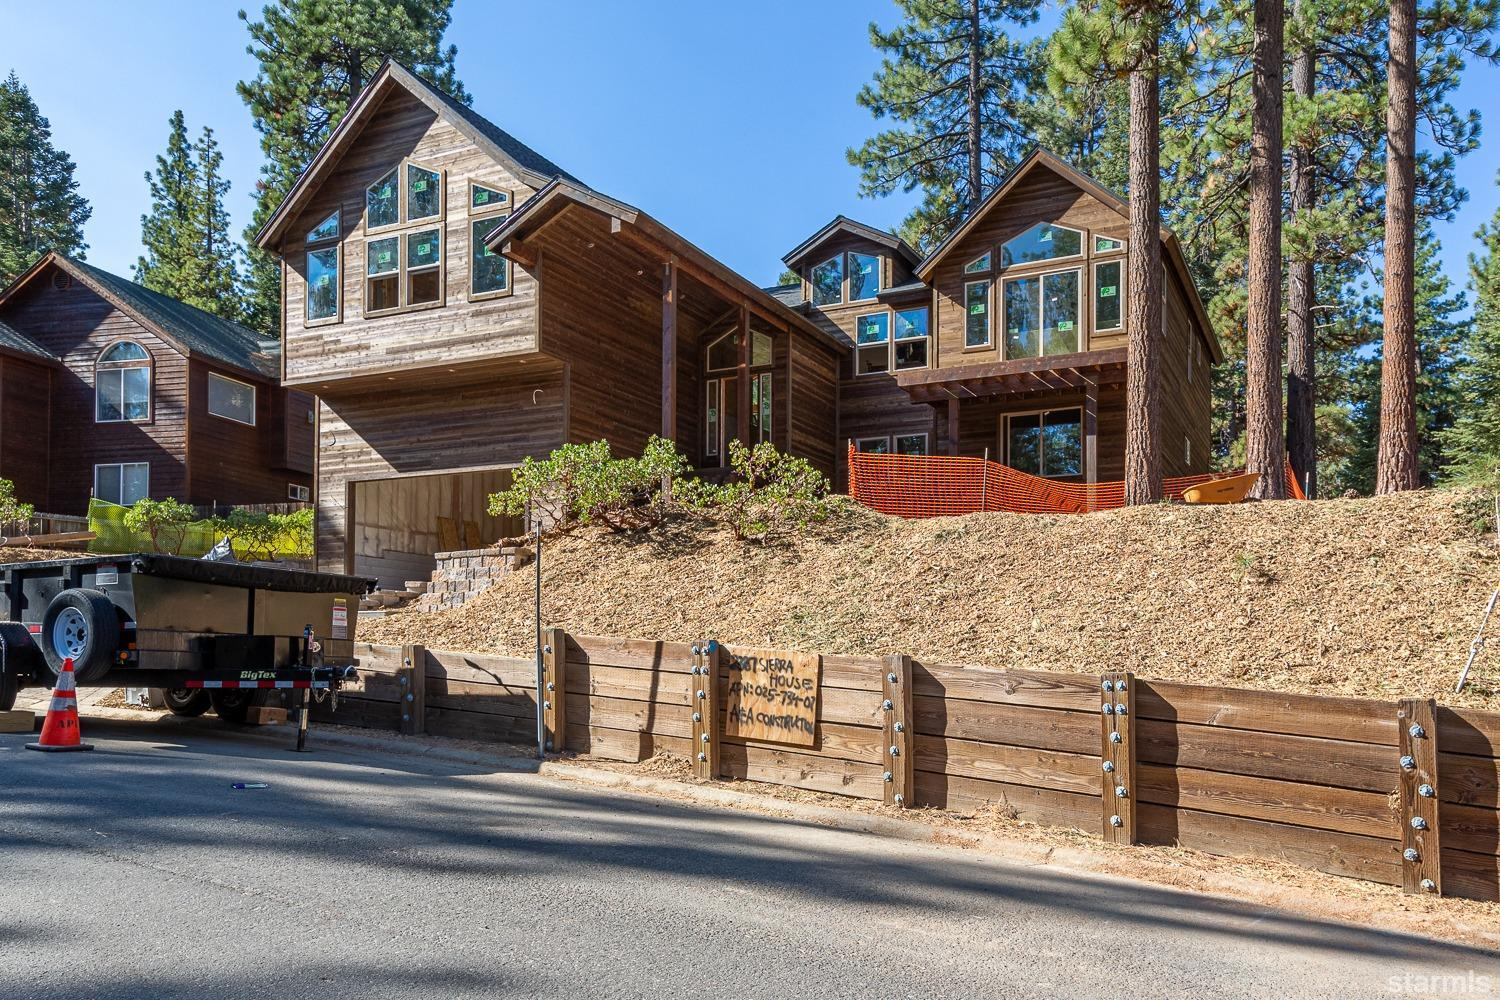 Image for 2387 Sierra House Trail, South Lake Tahoe, CA 96150